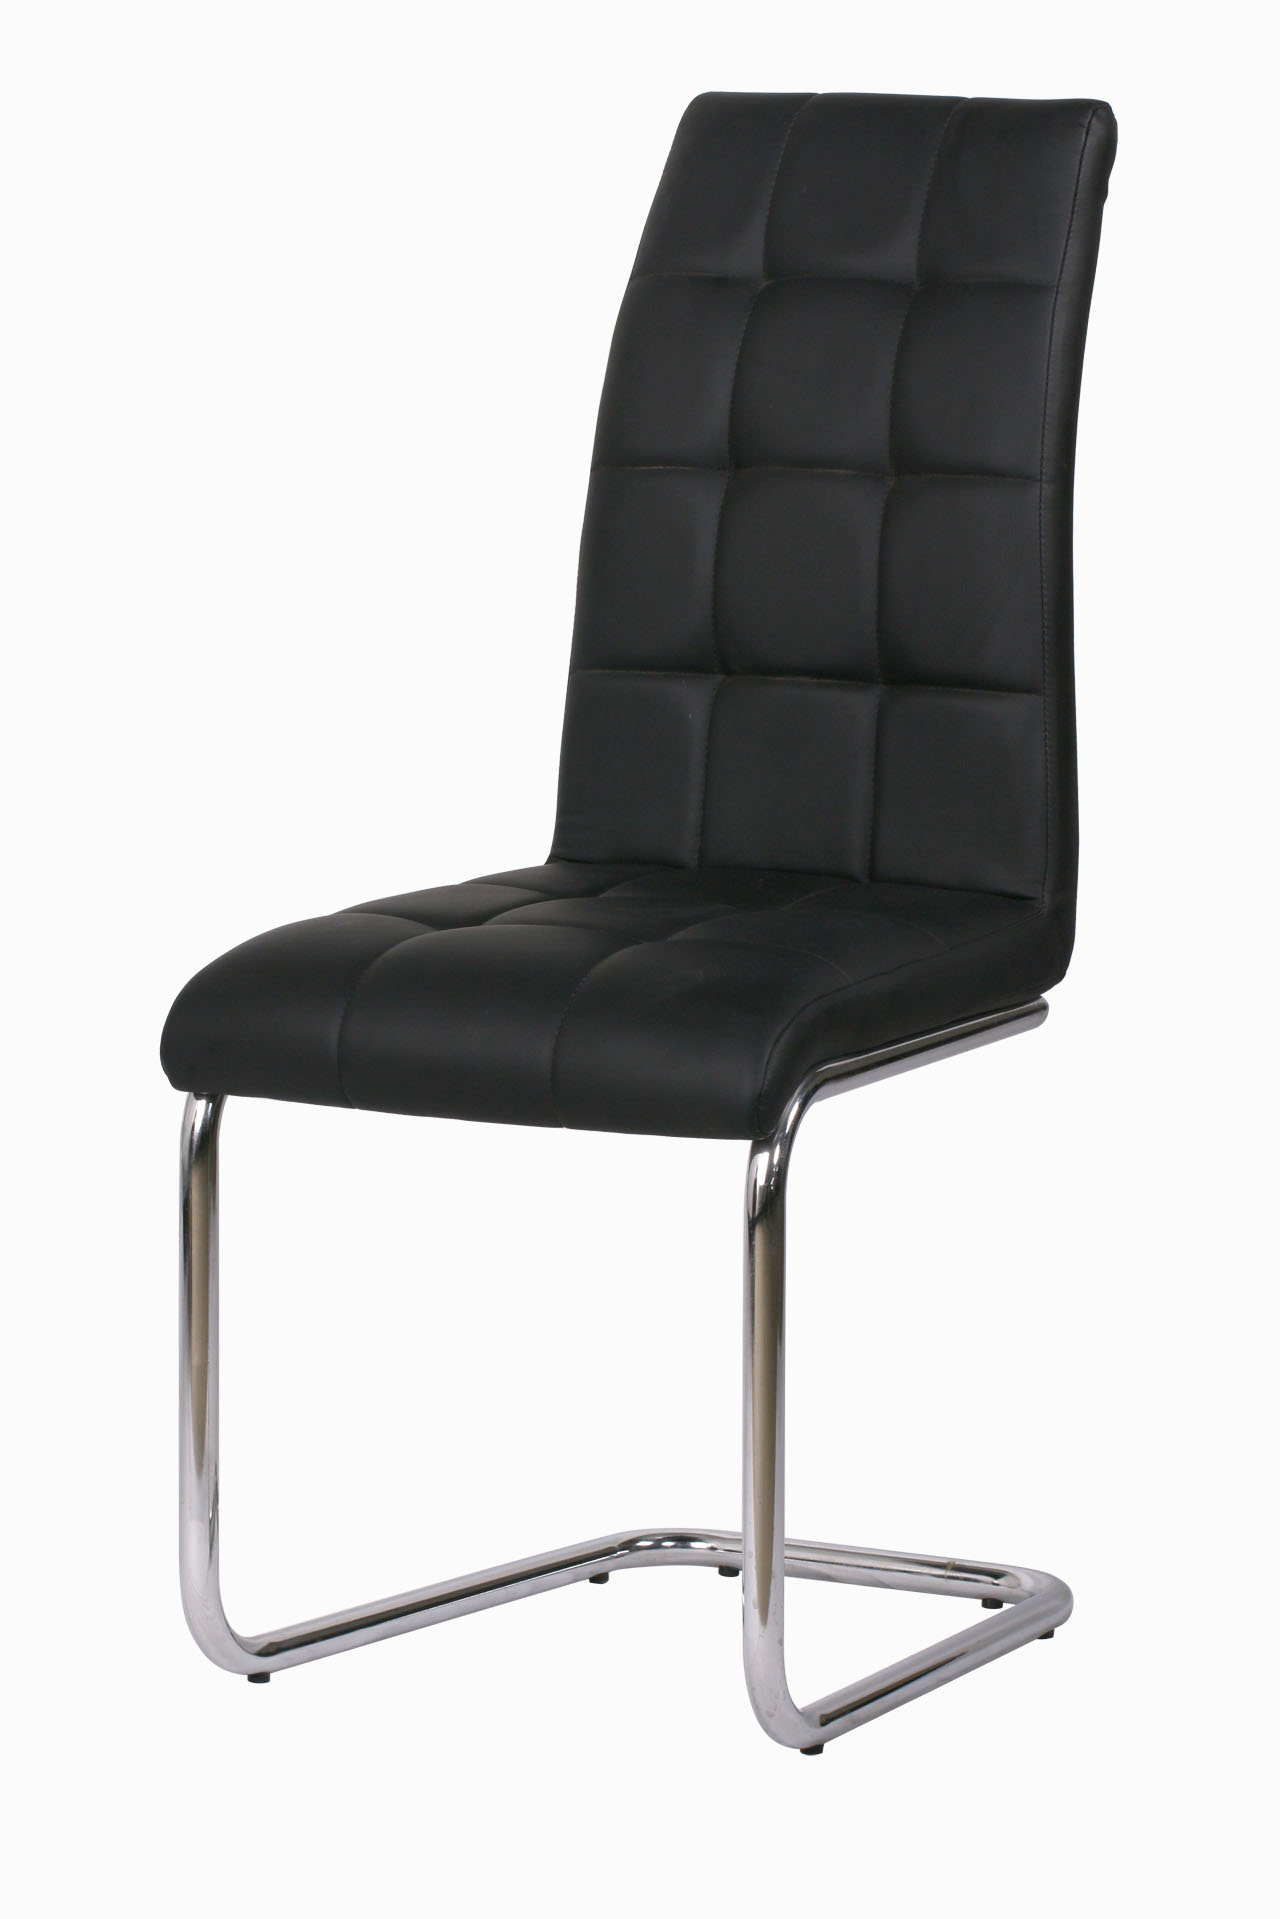 High Quality Dining Chair C1601 Leather Dining Chair